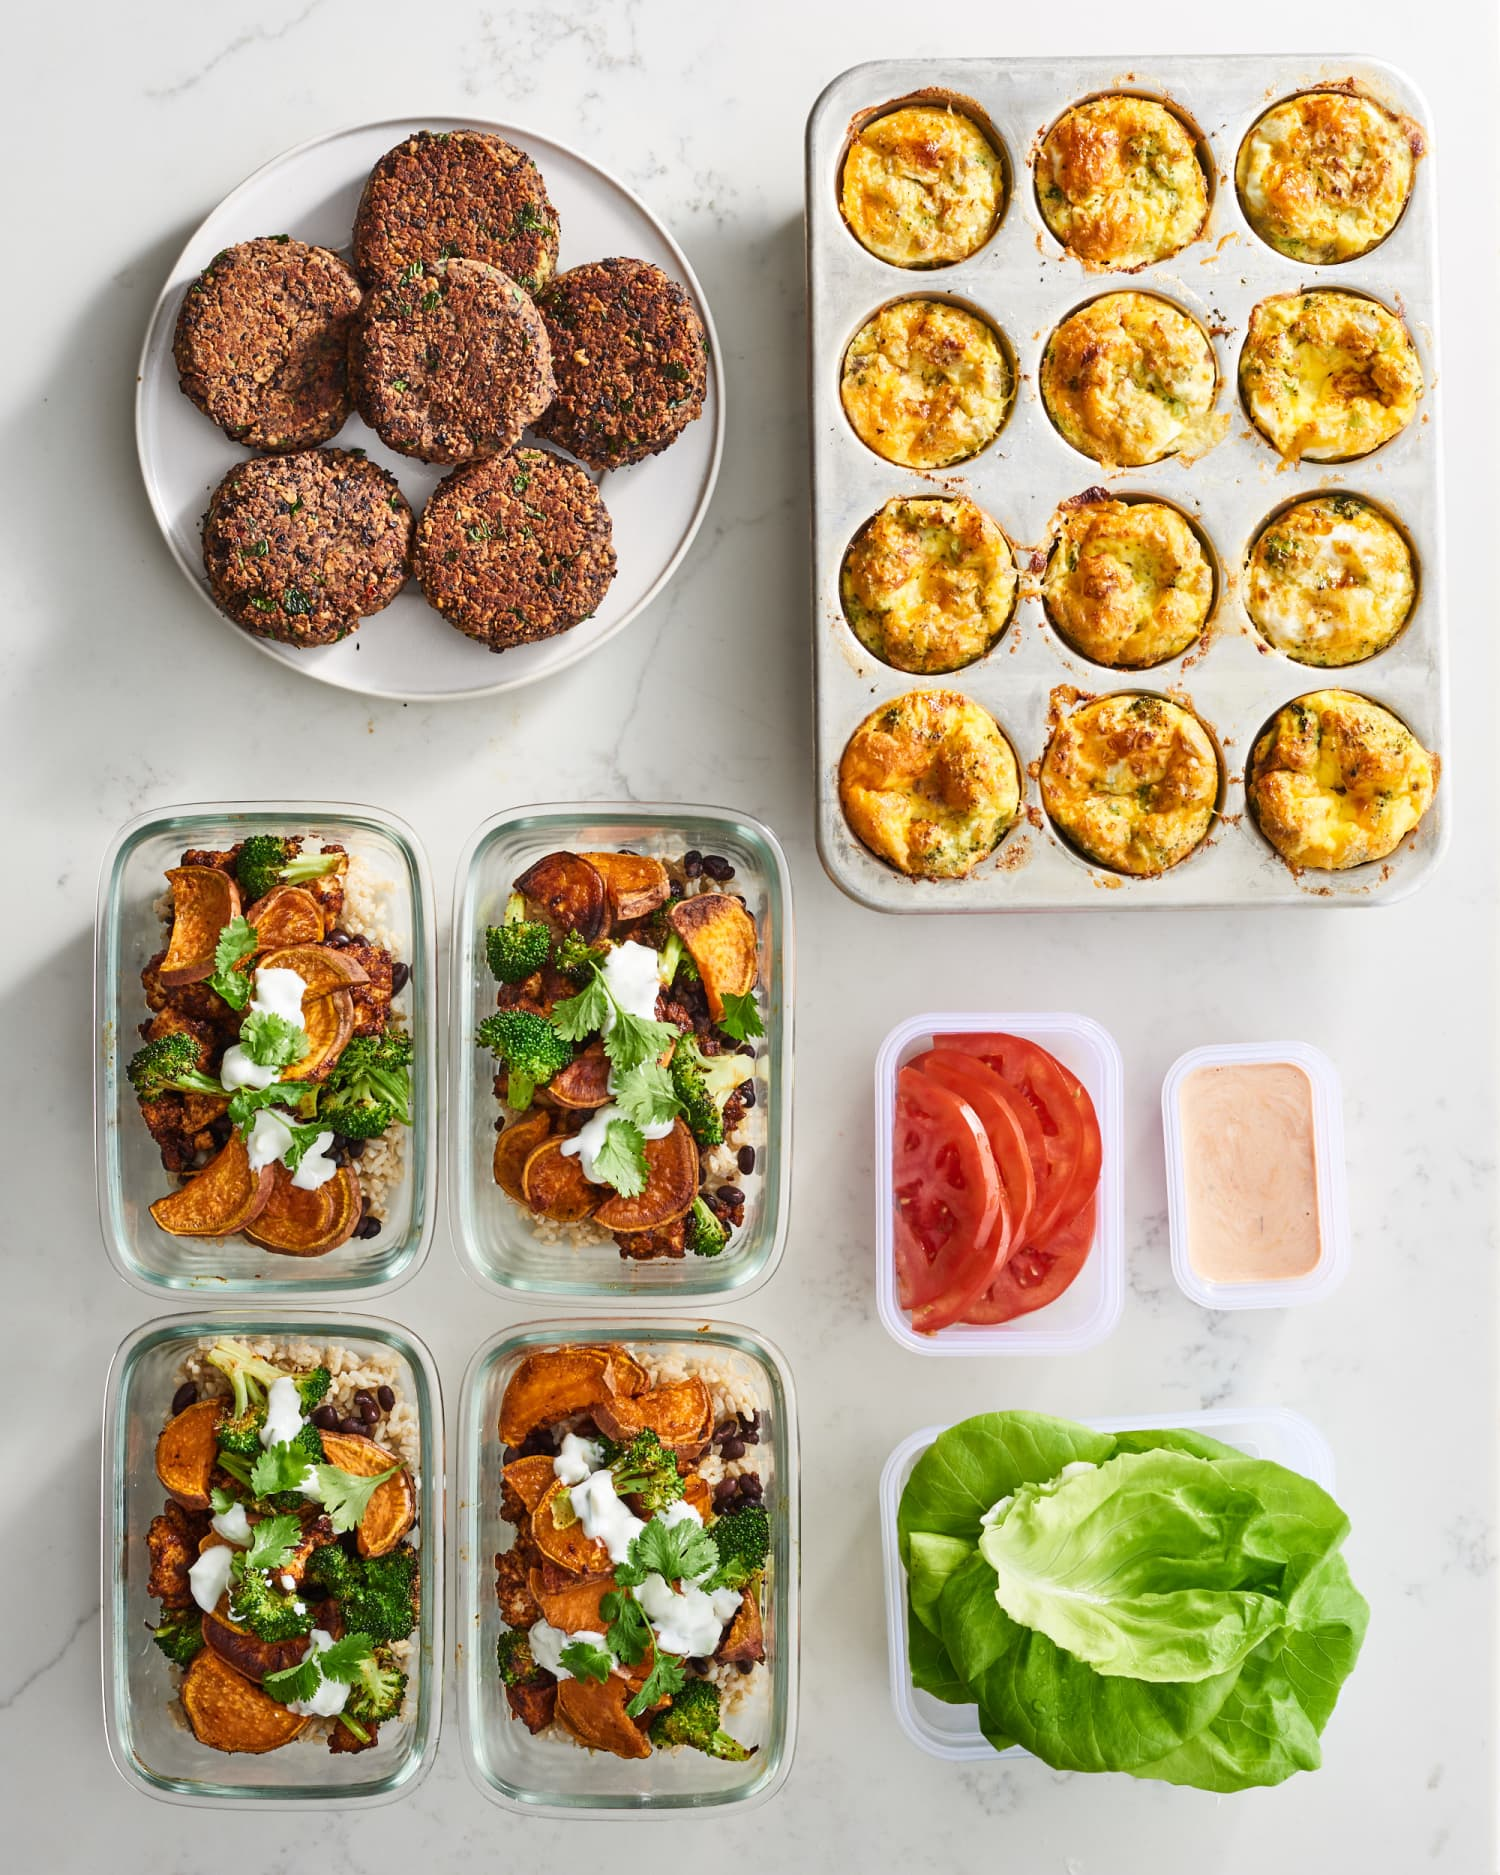 Meal Prep Plan: How I Prep a Week of High-Protein Vegetarian Meals In Just 2 Hours